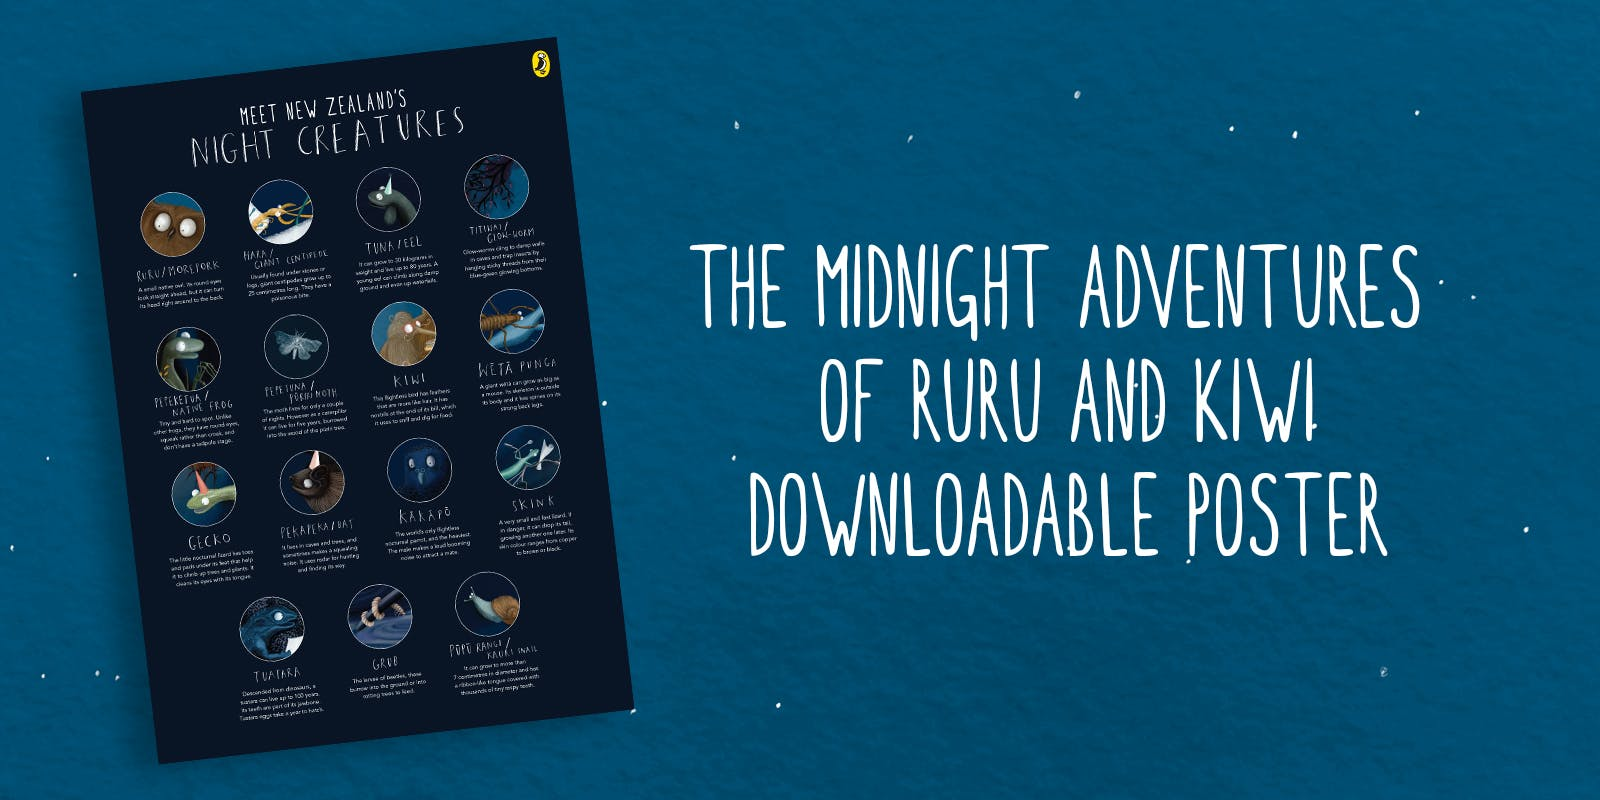 The Midnight Adventures of Ruru and Kiwi Downloadable Poster